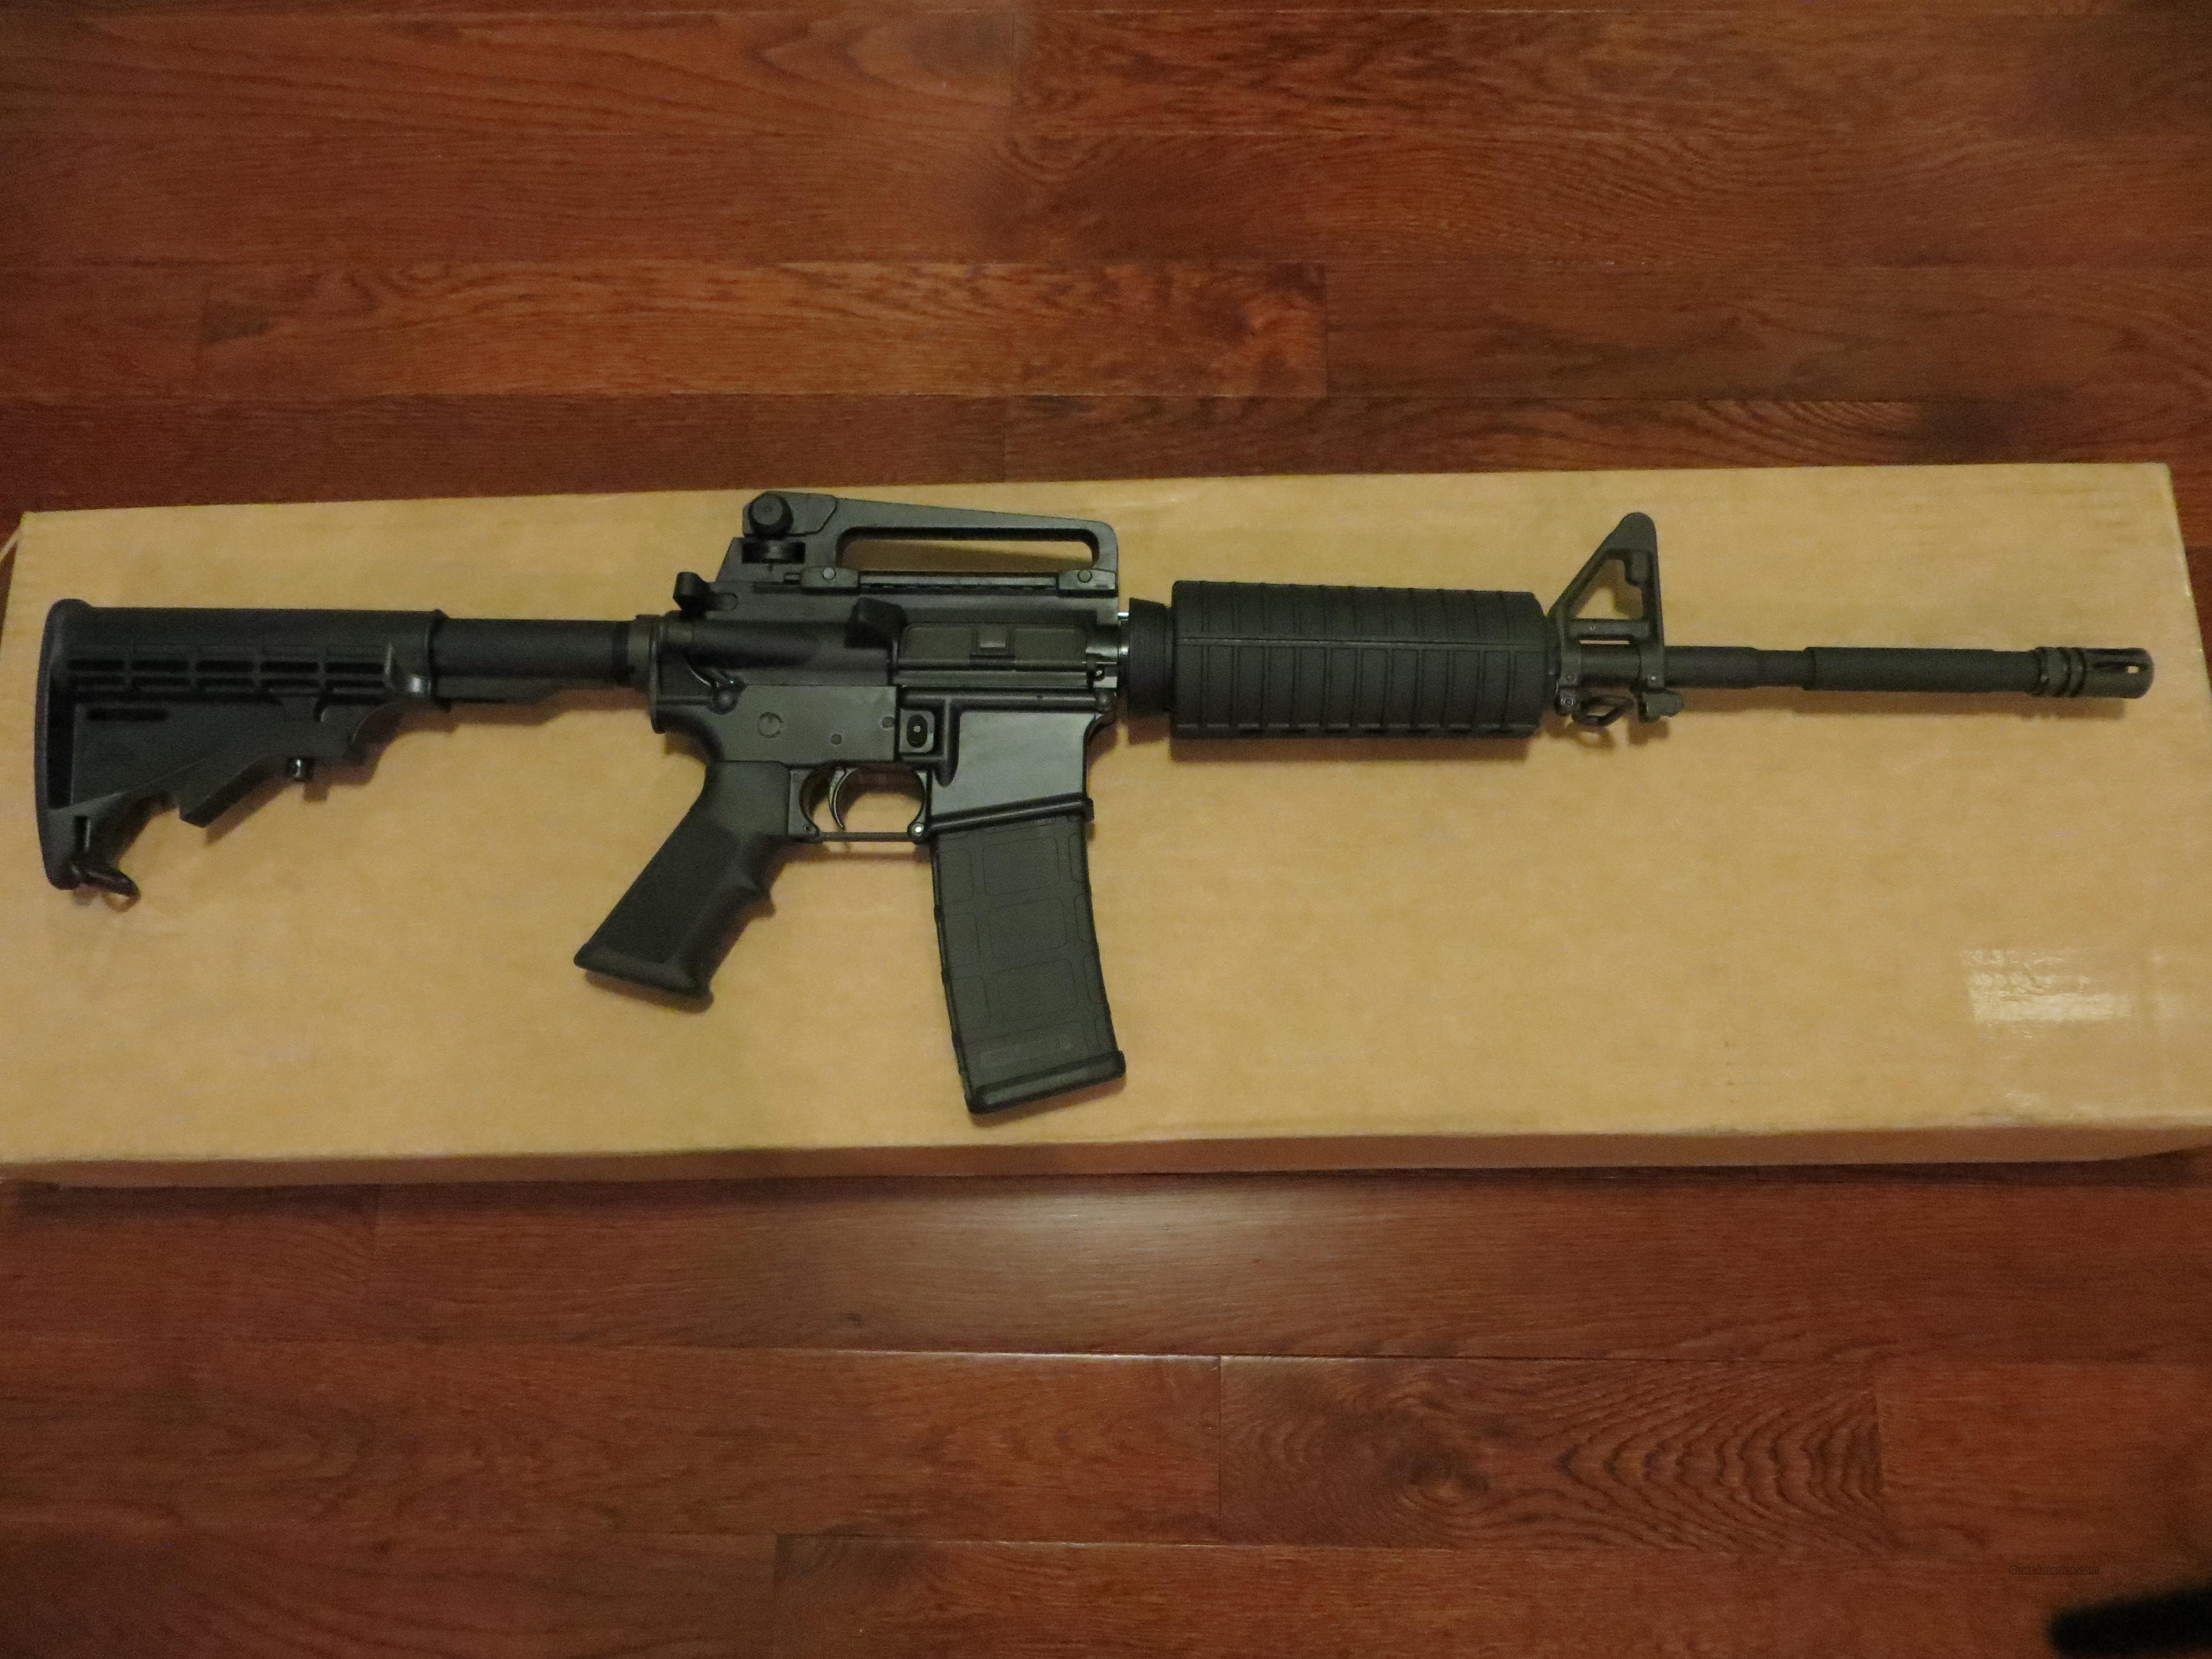 AR15 m4 style  Guns > Rifles > AR-15 Rifles - Small Manufacturers > Complete Rifle